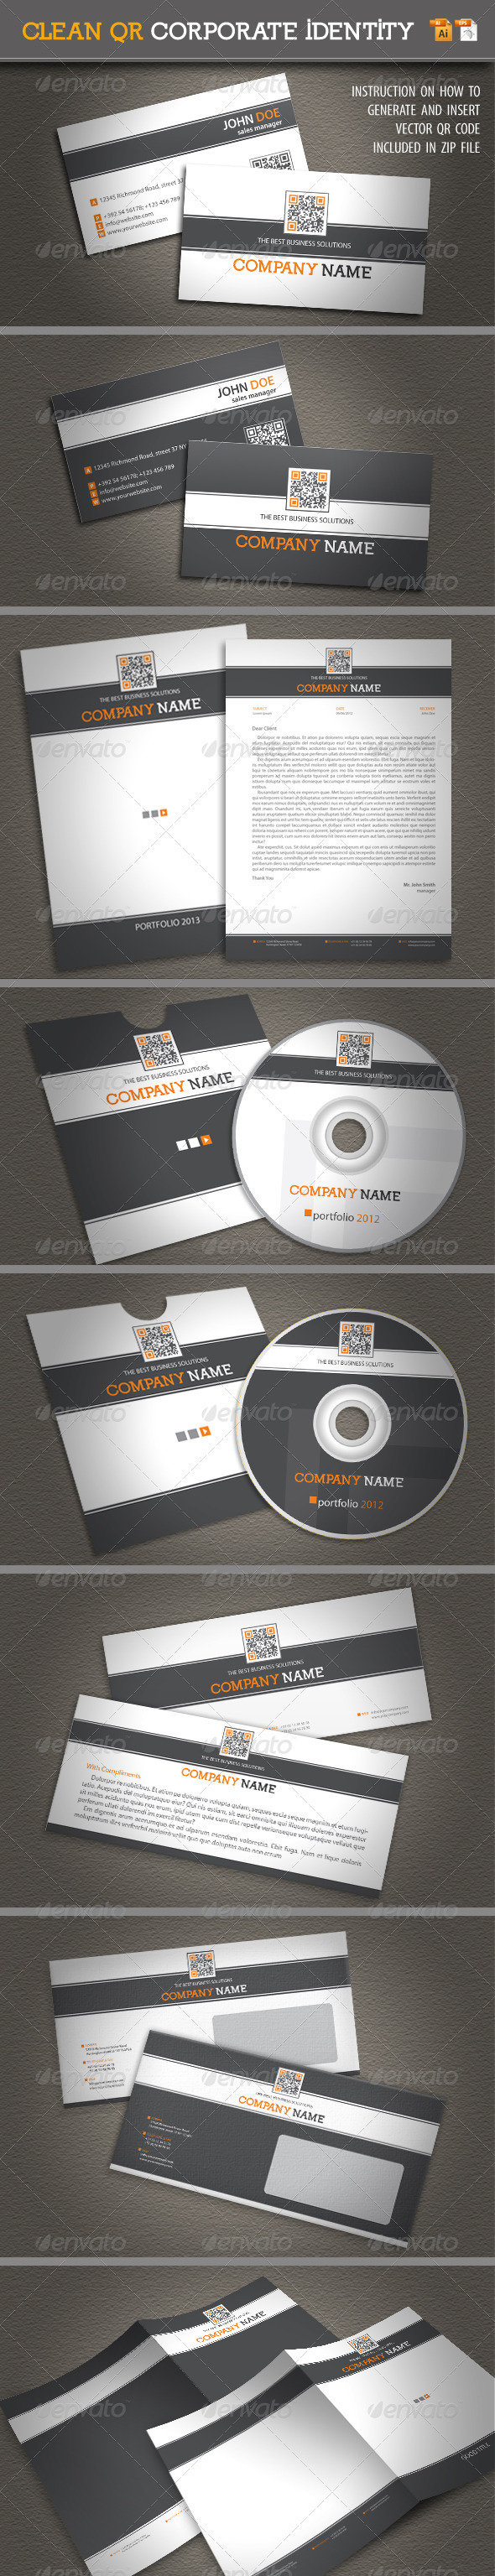 Clean QR Corporate Identity  - Stationery Print Templates